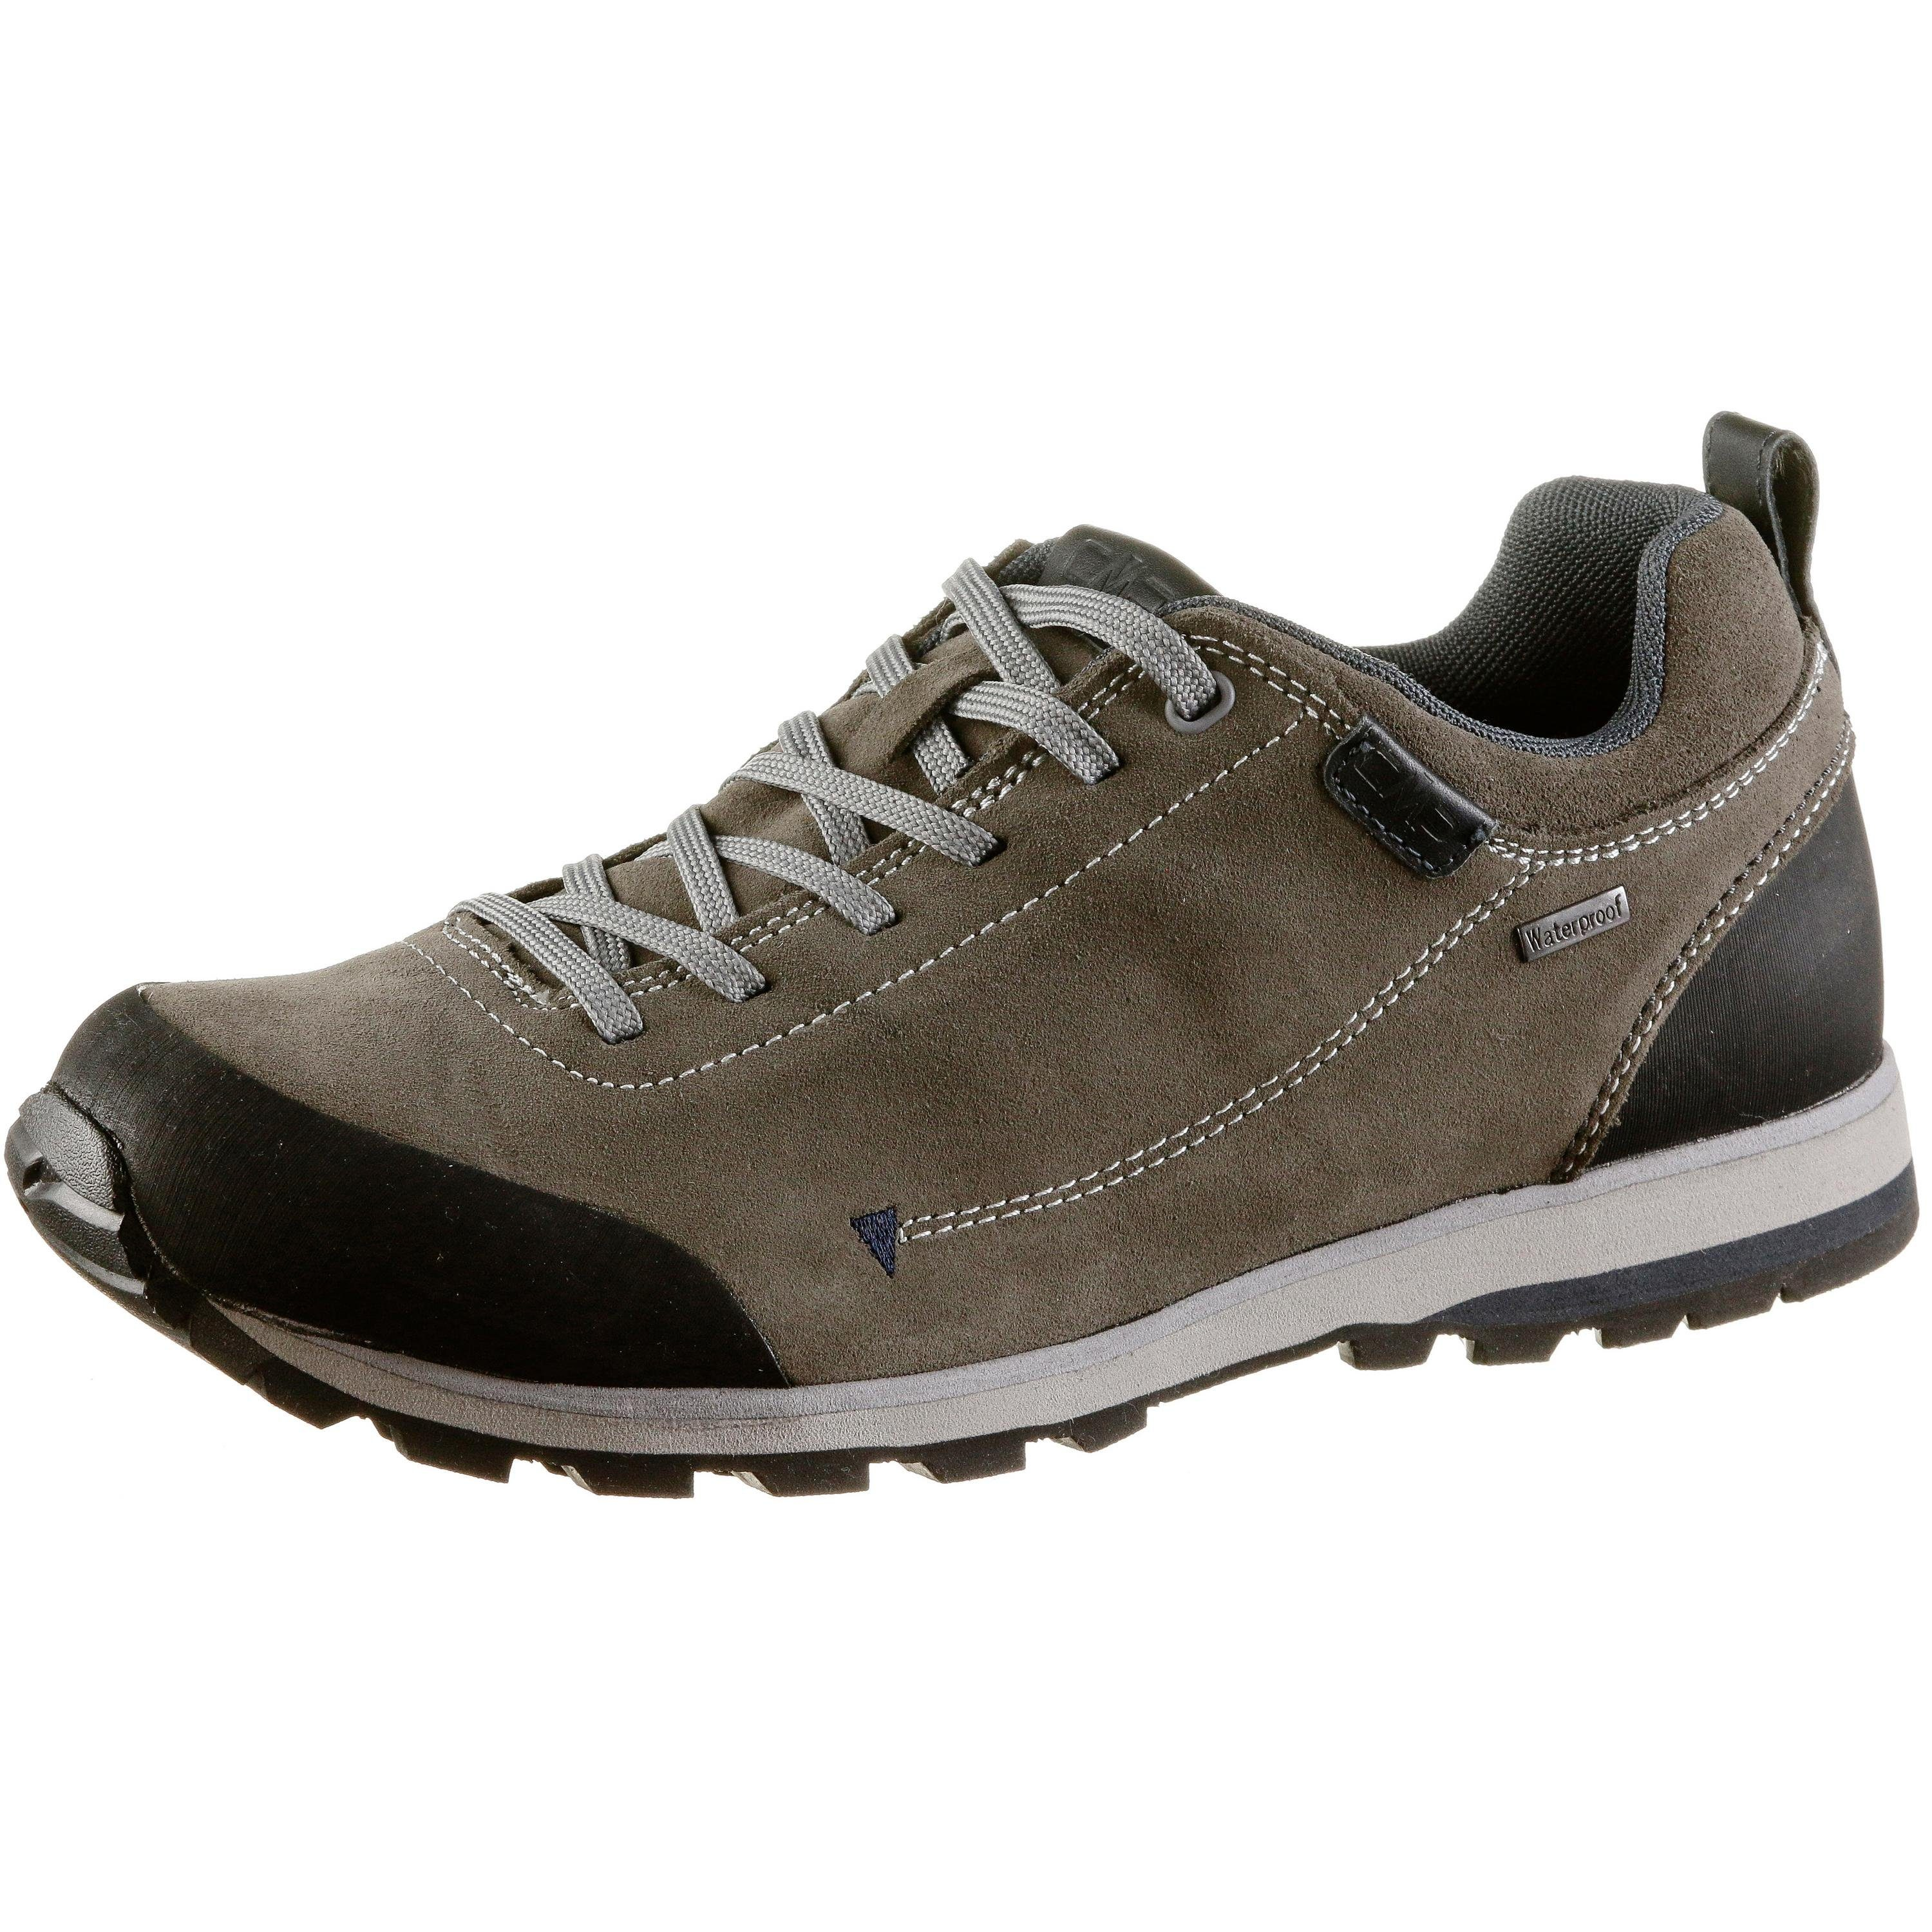 CMP »Elettra Low WP Elettra Low WP« Outdoorschuh | OTTO